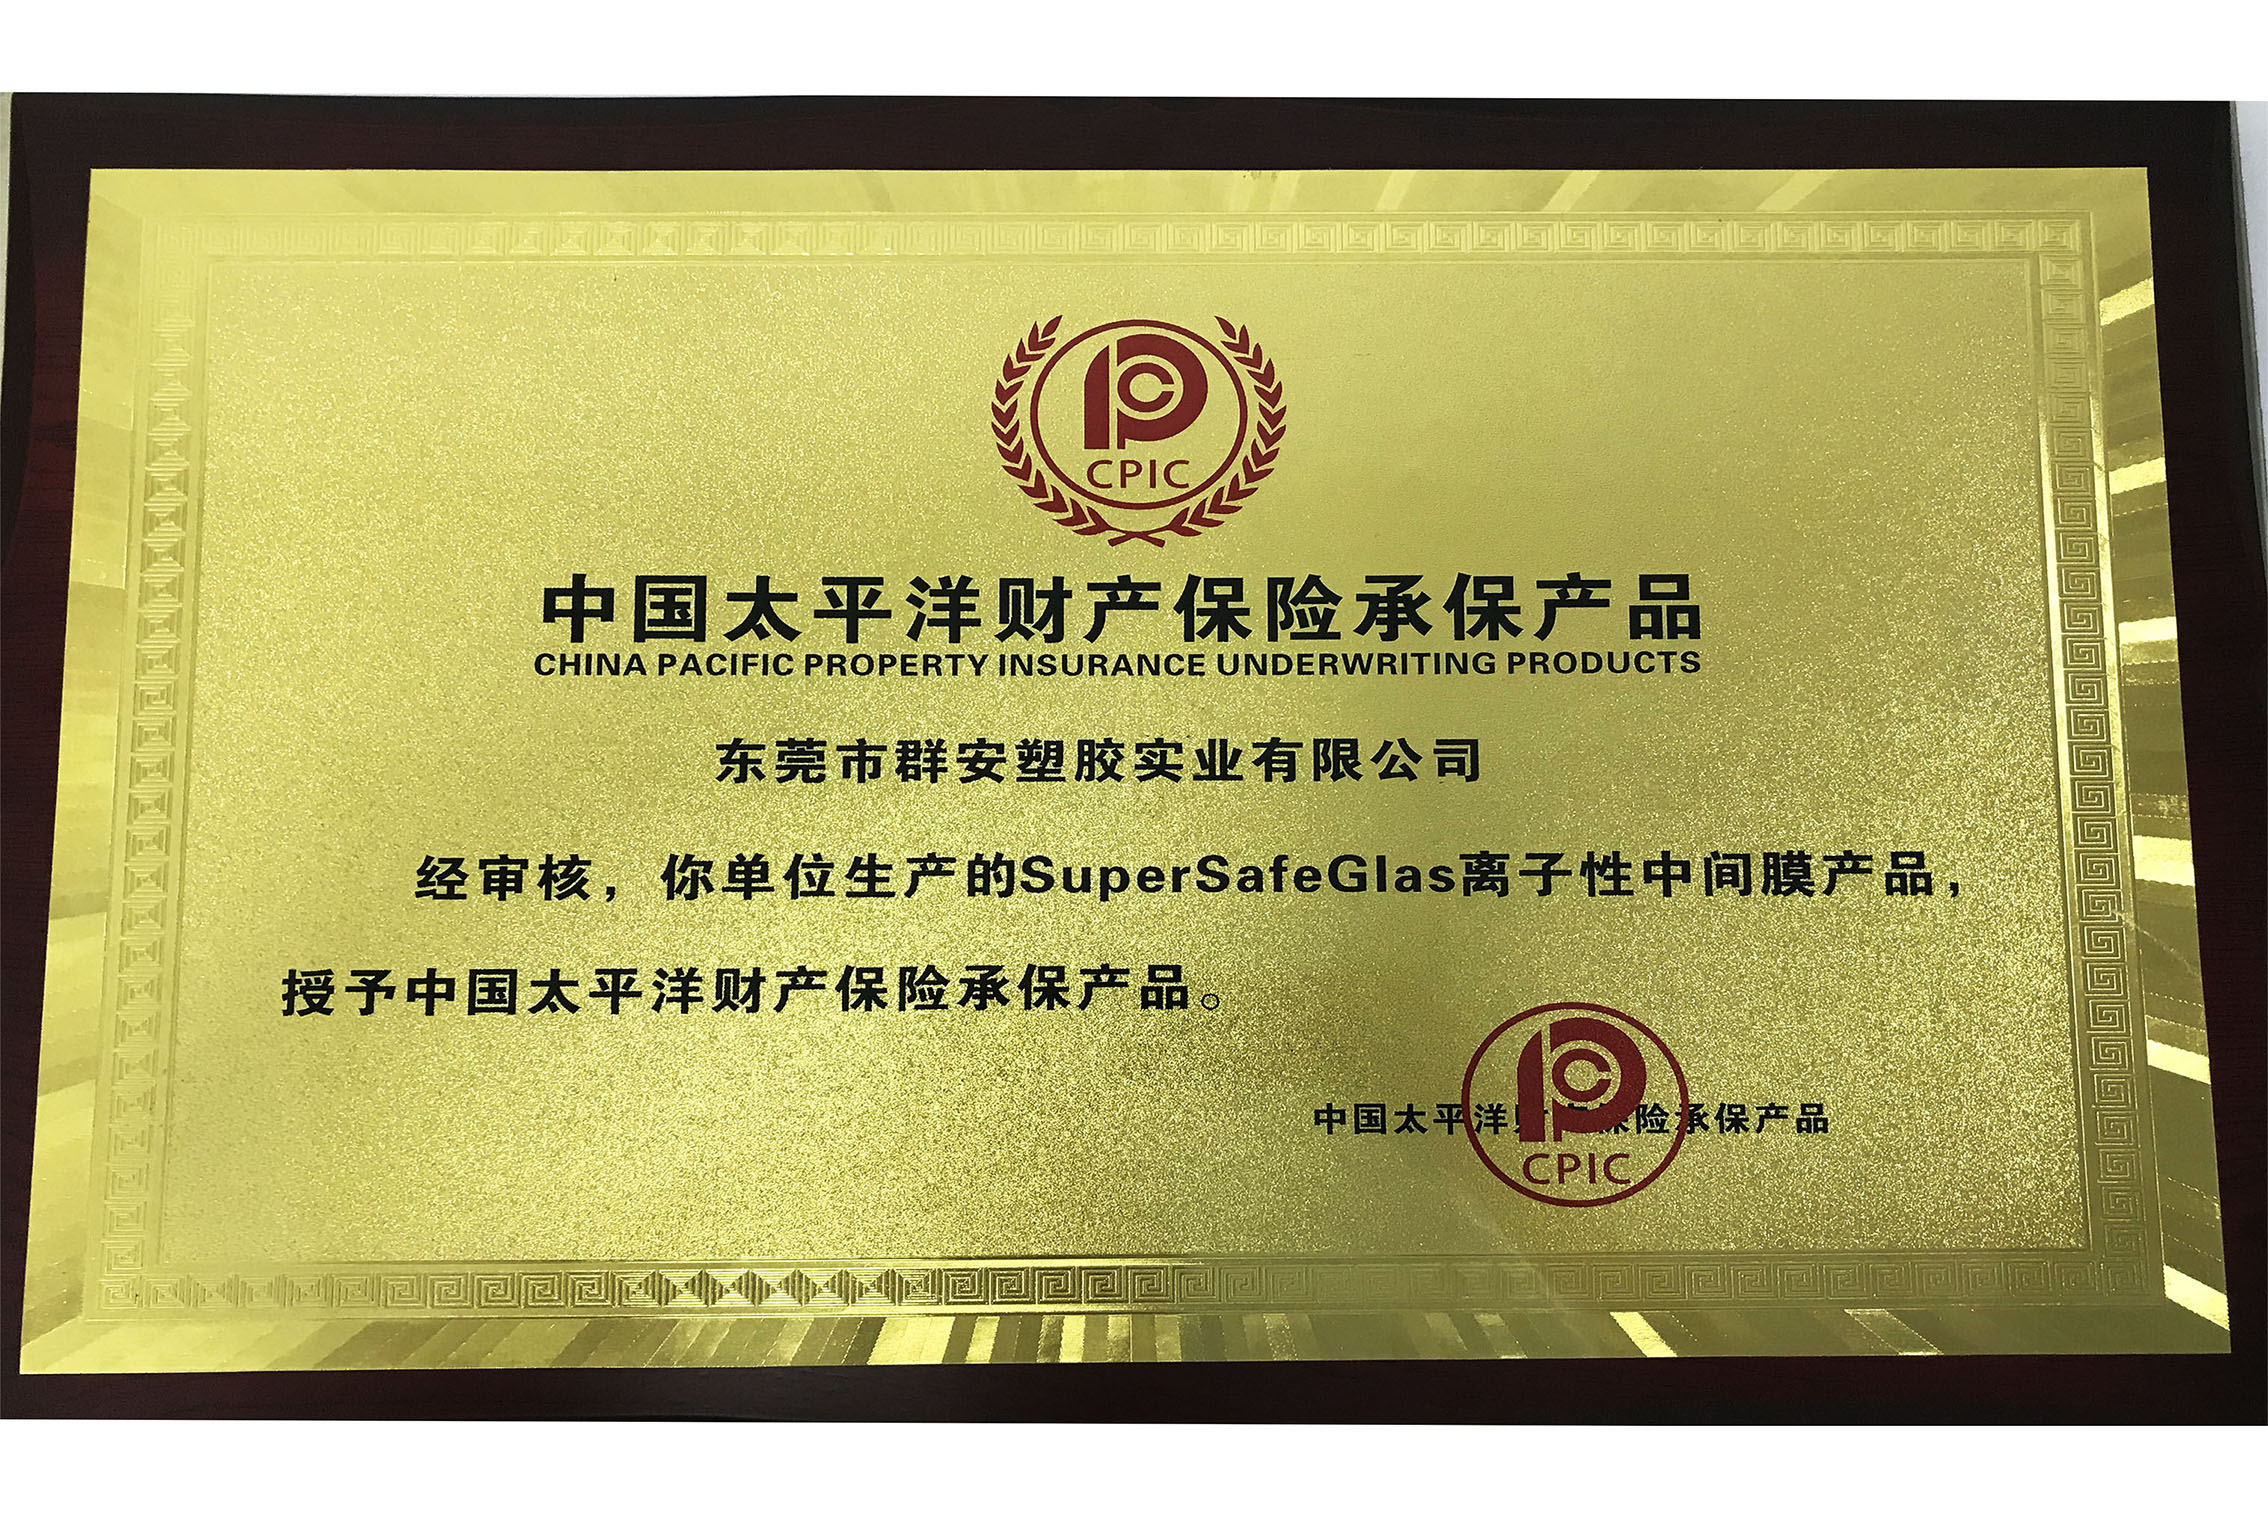 China Pacific Property Insurance undertakes Qunan SuperSafeGlas ionic intermediate membrane products